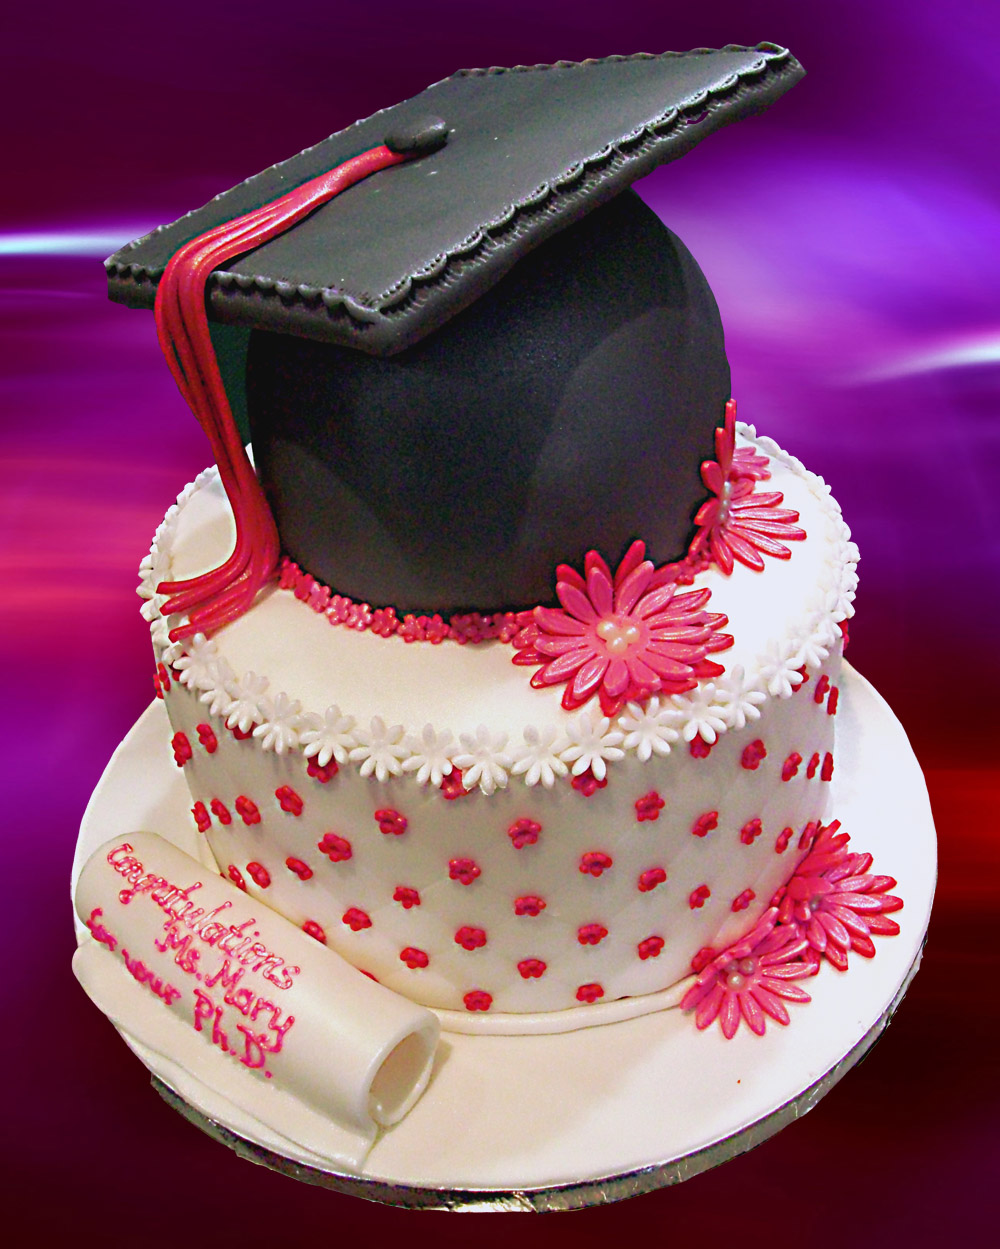 Cake Design Graduation : Graduation Cakes   Decoration Ideas Little Birthday Cakes